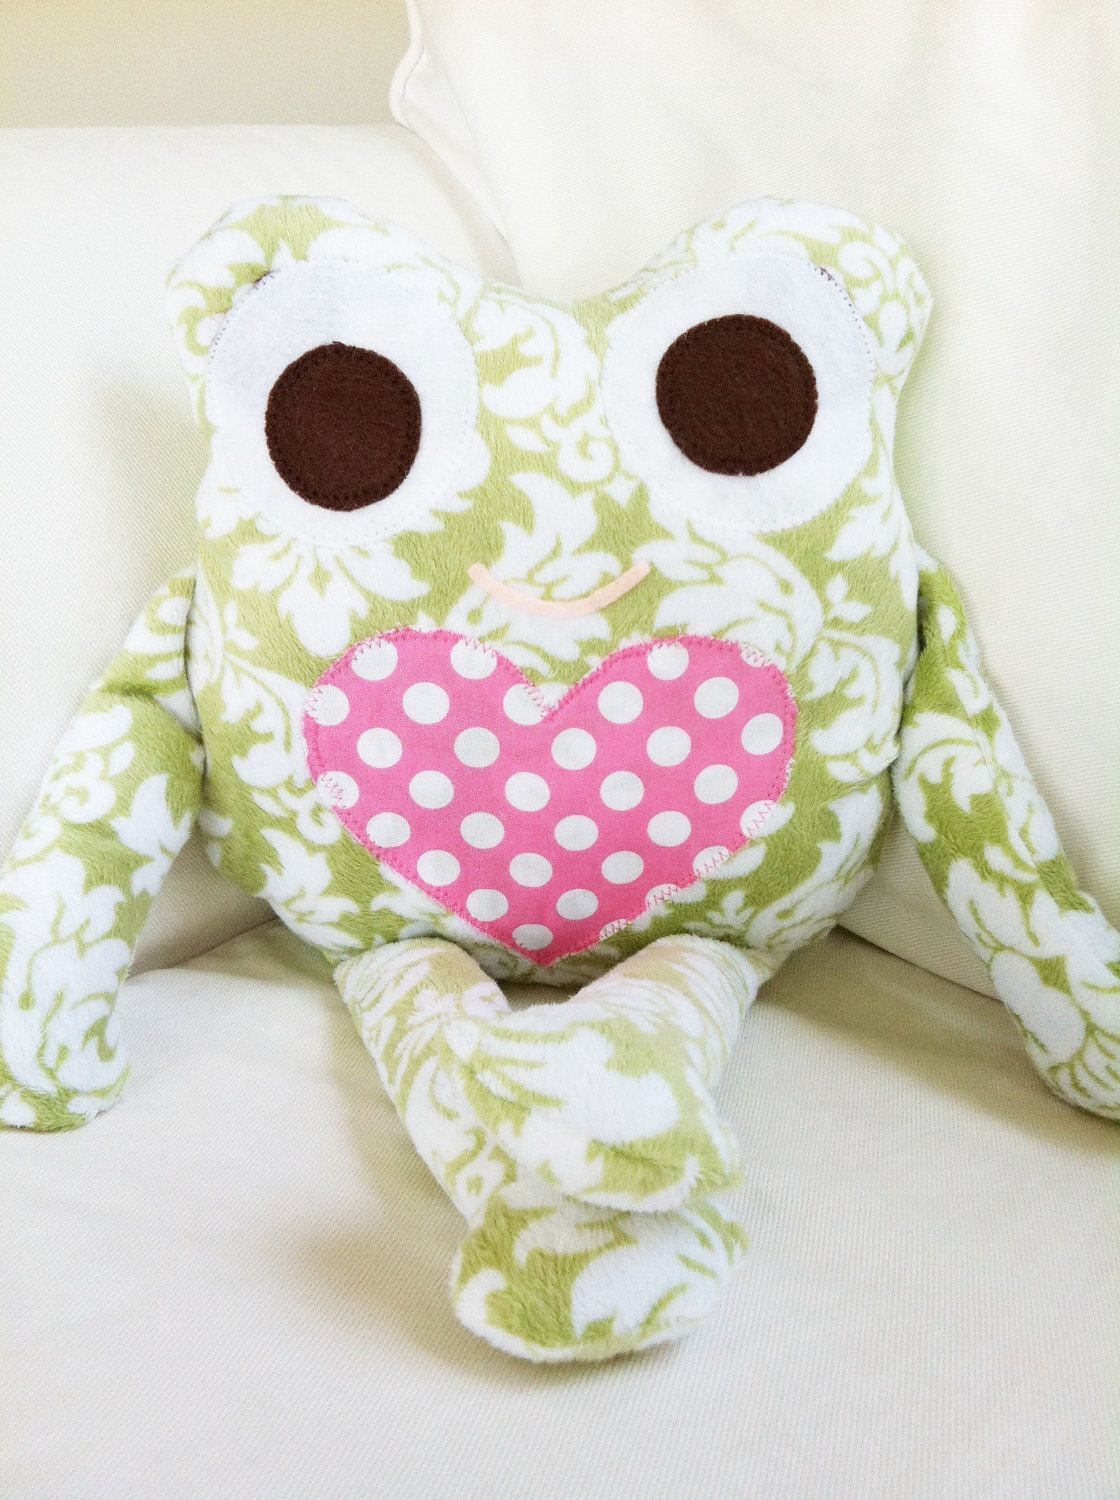 Pdf sewing pattern frog pillow softie fabric toy pattern 900 pdf sewing pattern frog pillow softie fabric toy pattern 900 via etsy jeuxipadfo Images